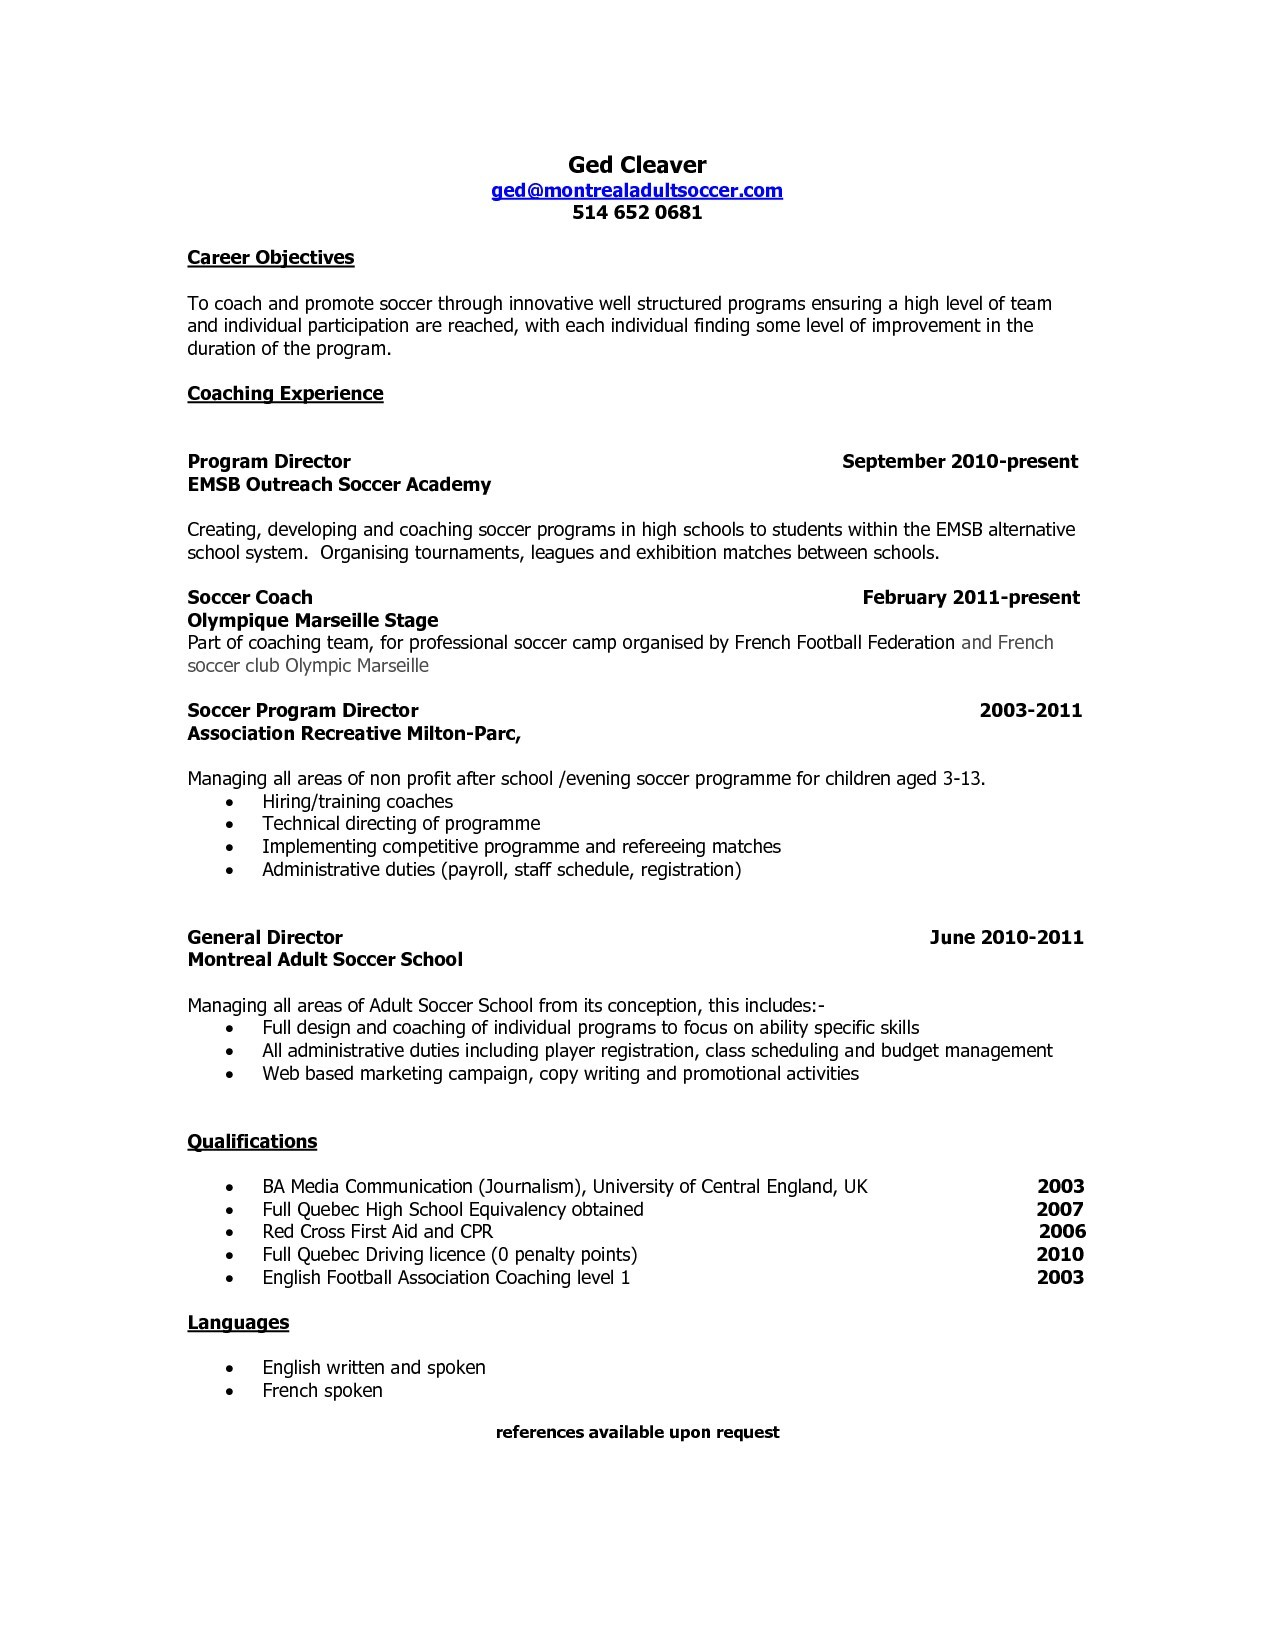 soccer coach resume mt home arts football player sample quebec new template best Resume Football Player Resume Sample